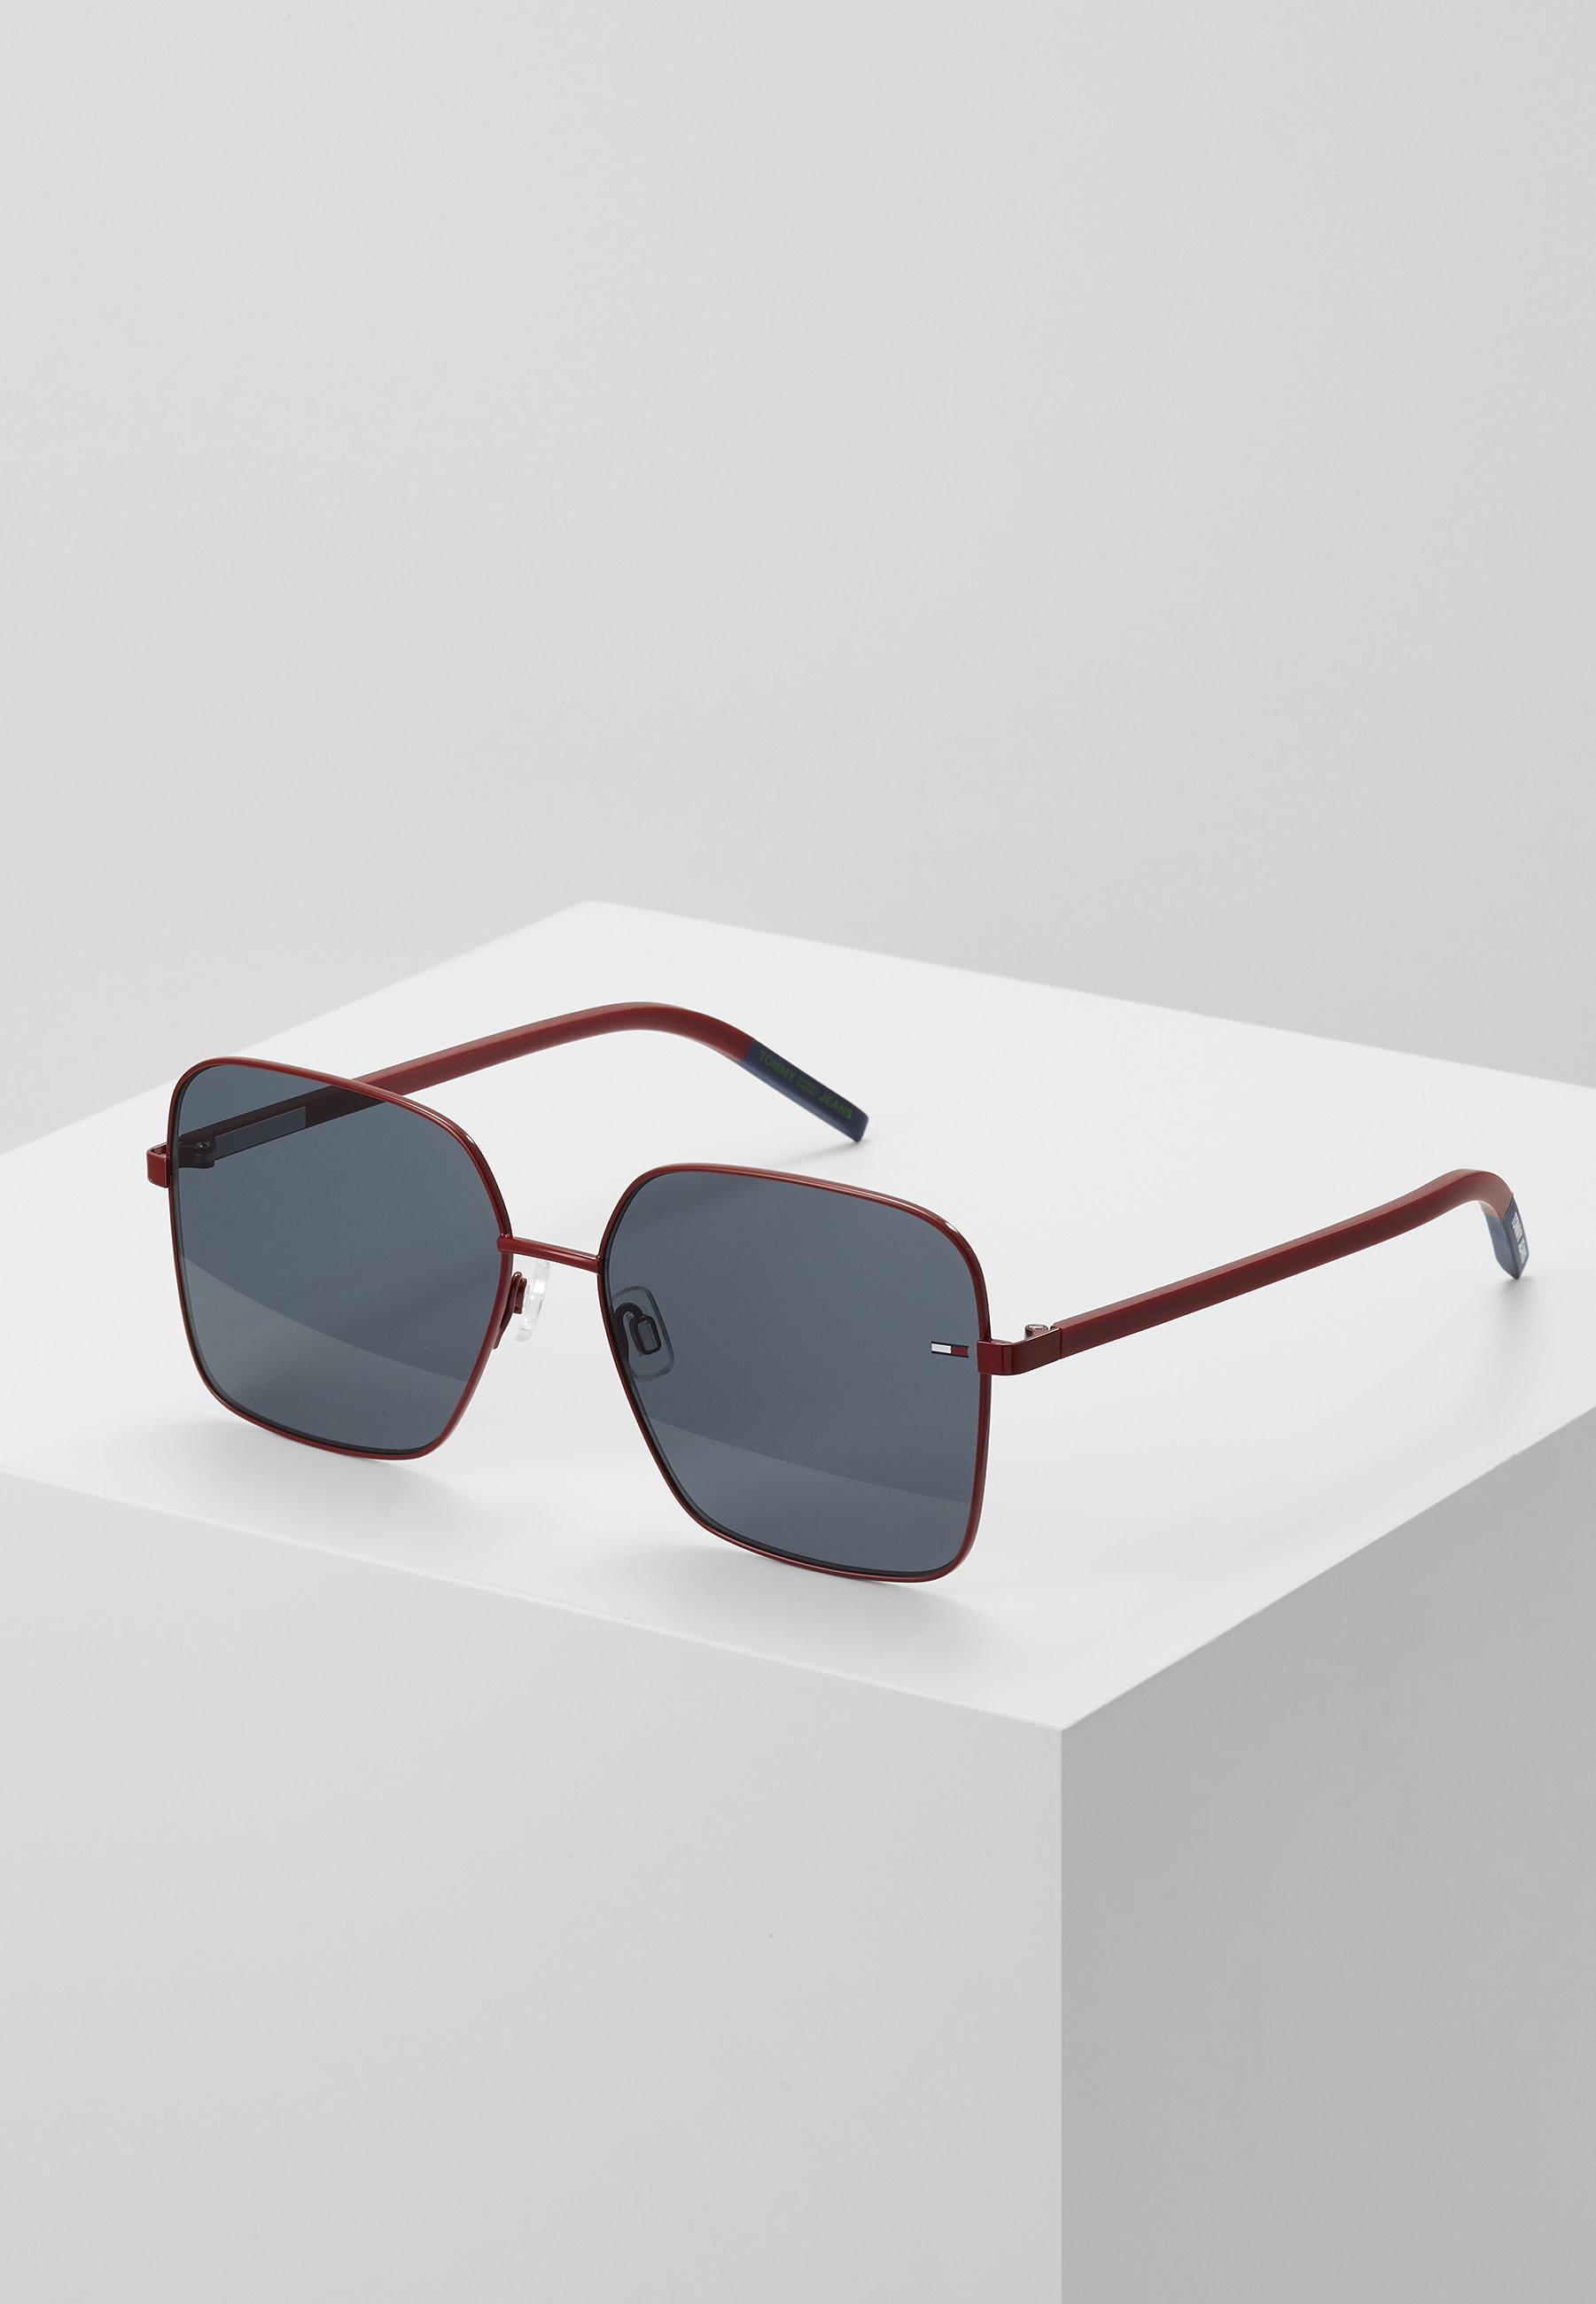 Tommy Hilfiger Sunglasses - red